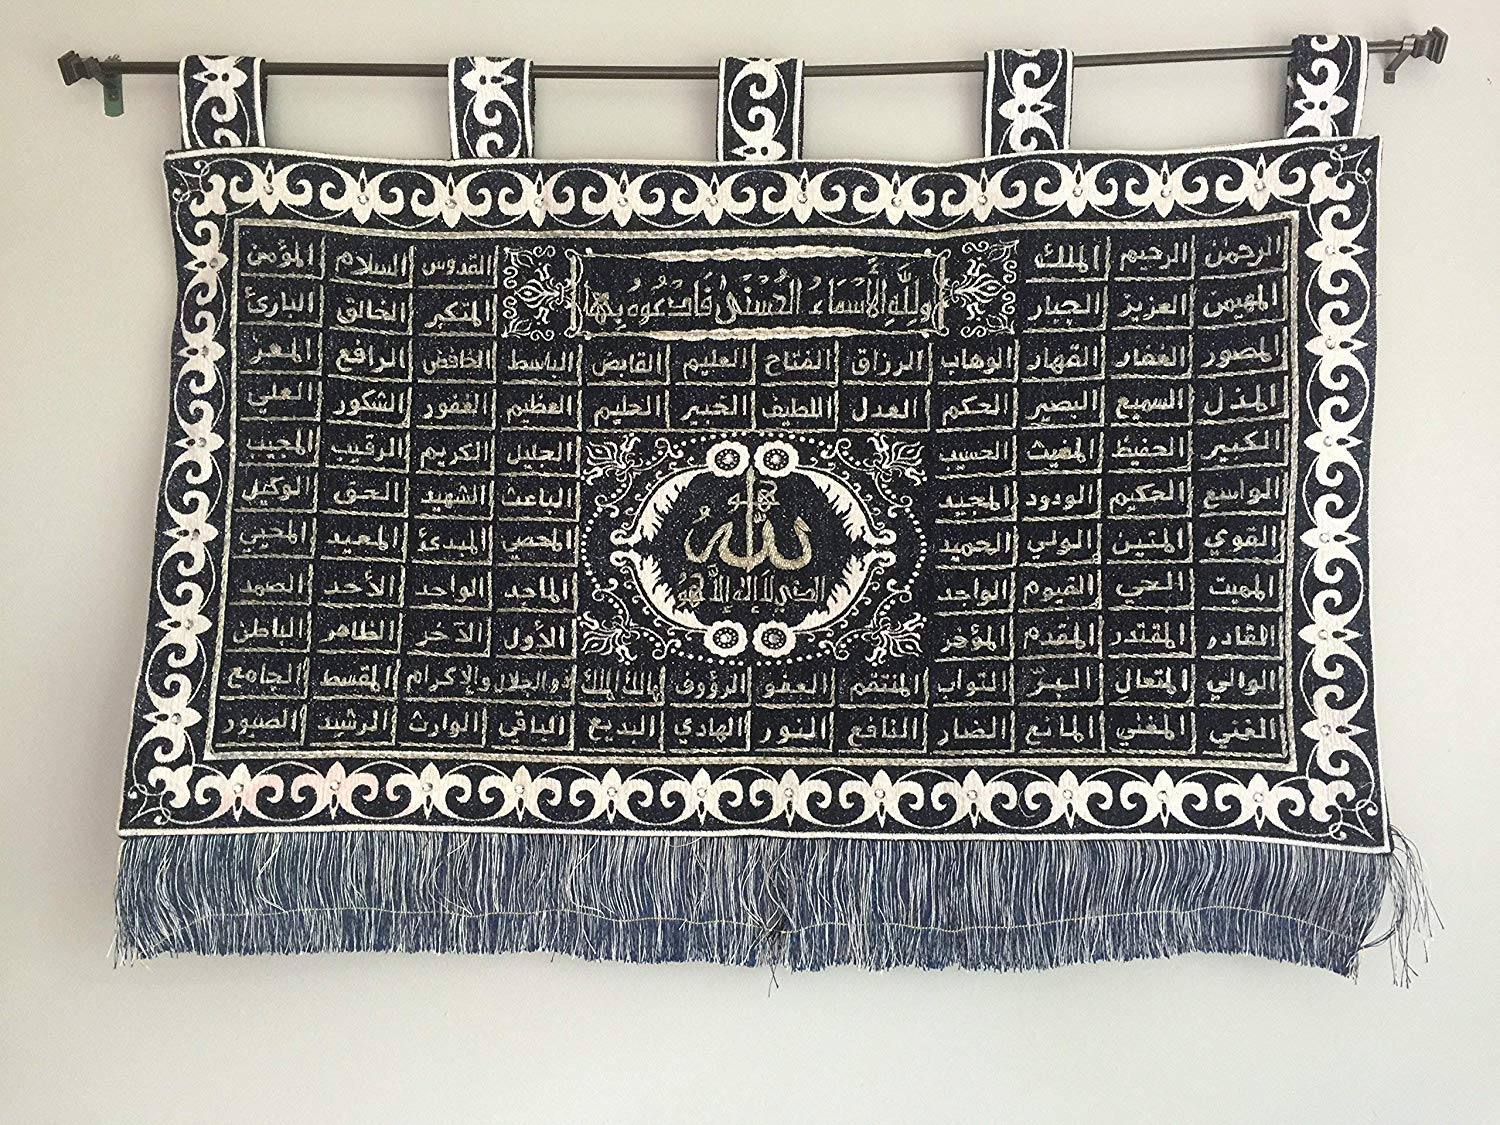 "Islamic Hajj Haji Holiday Gift Asmaul Husna Names of Allah Blue Curtain Style Wall Hanging Embroidered Beads Embroidered Beads Fabric Decor Woven Vivid Jacquard tapestry Elegant Fabric Decor 40""x26"""